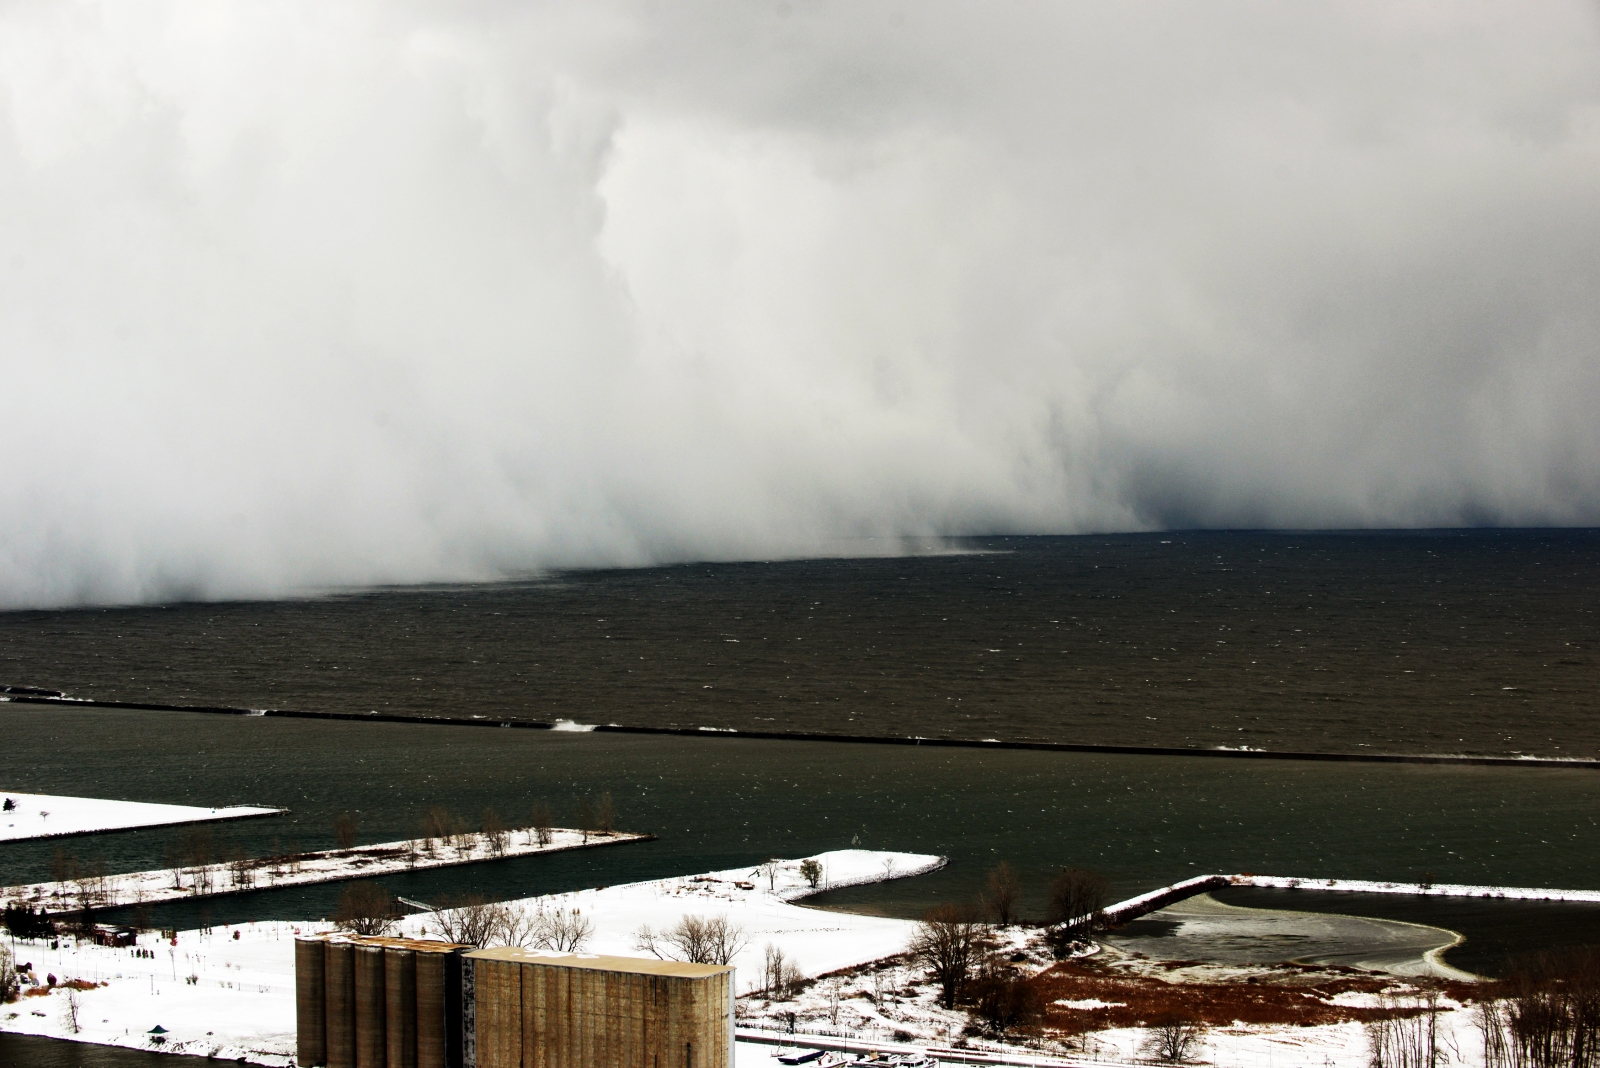 A lake-effect snow storm with freezing temperatures produces a wall of snow travelling over Lake Erie into Buffalo, New York. November 18, 2014. A whirlpool of frigid, dense air known as a